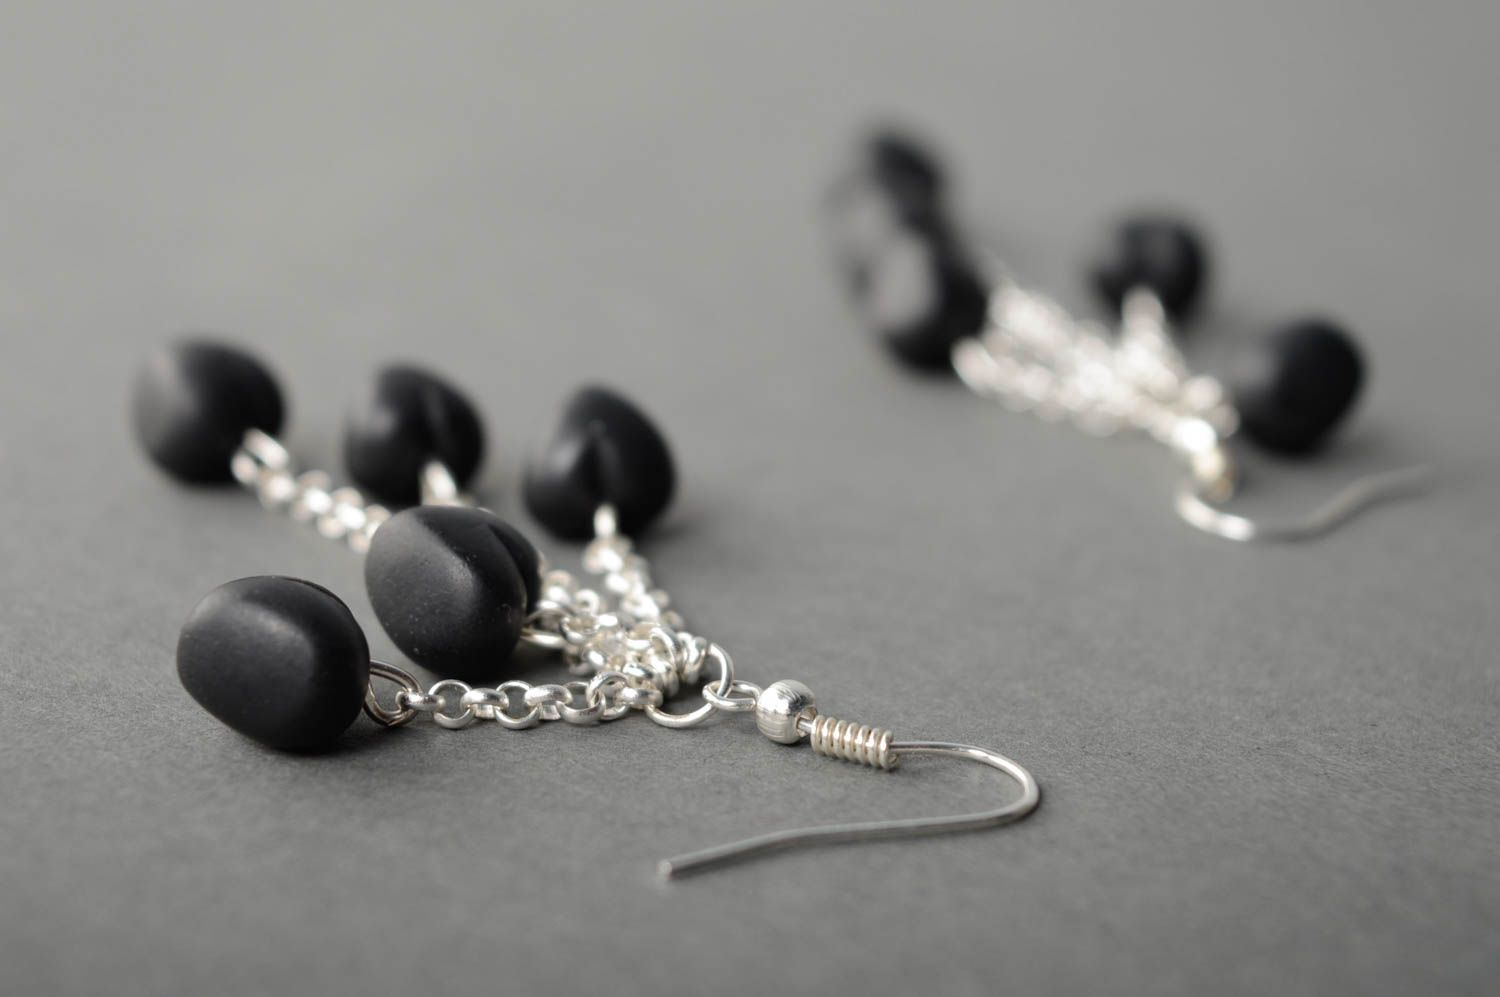 Polymer clay earrings with charms Black Heart photo 5